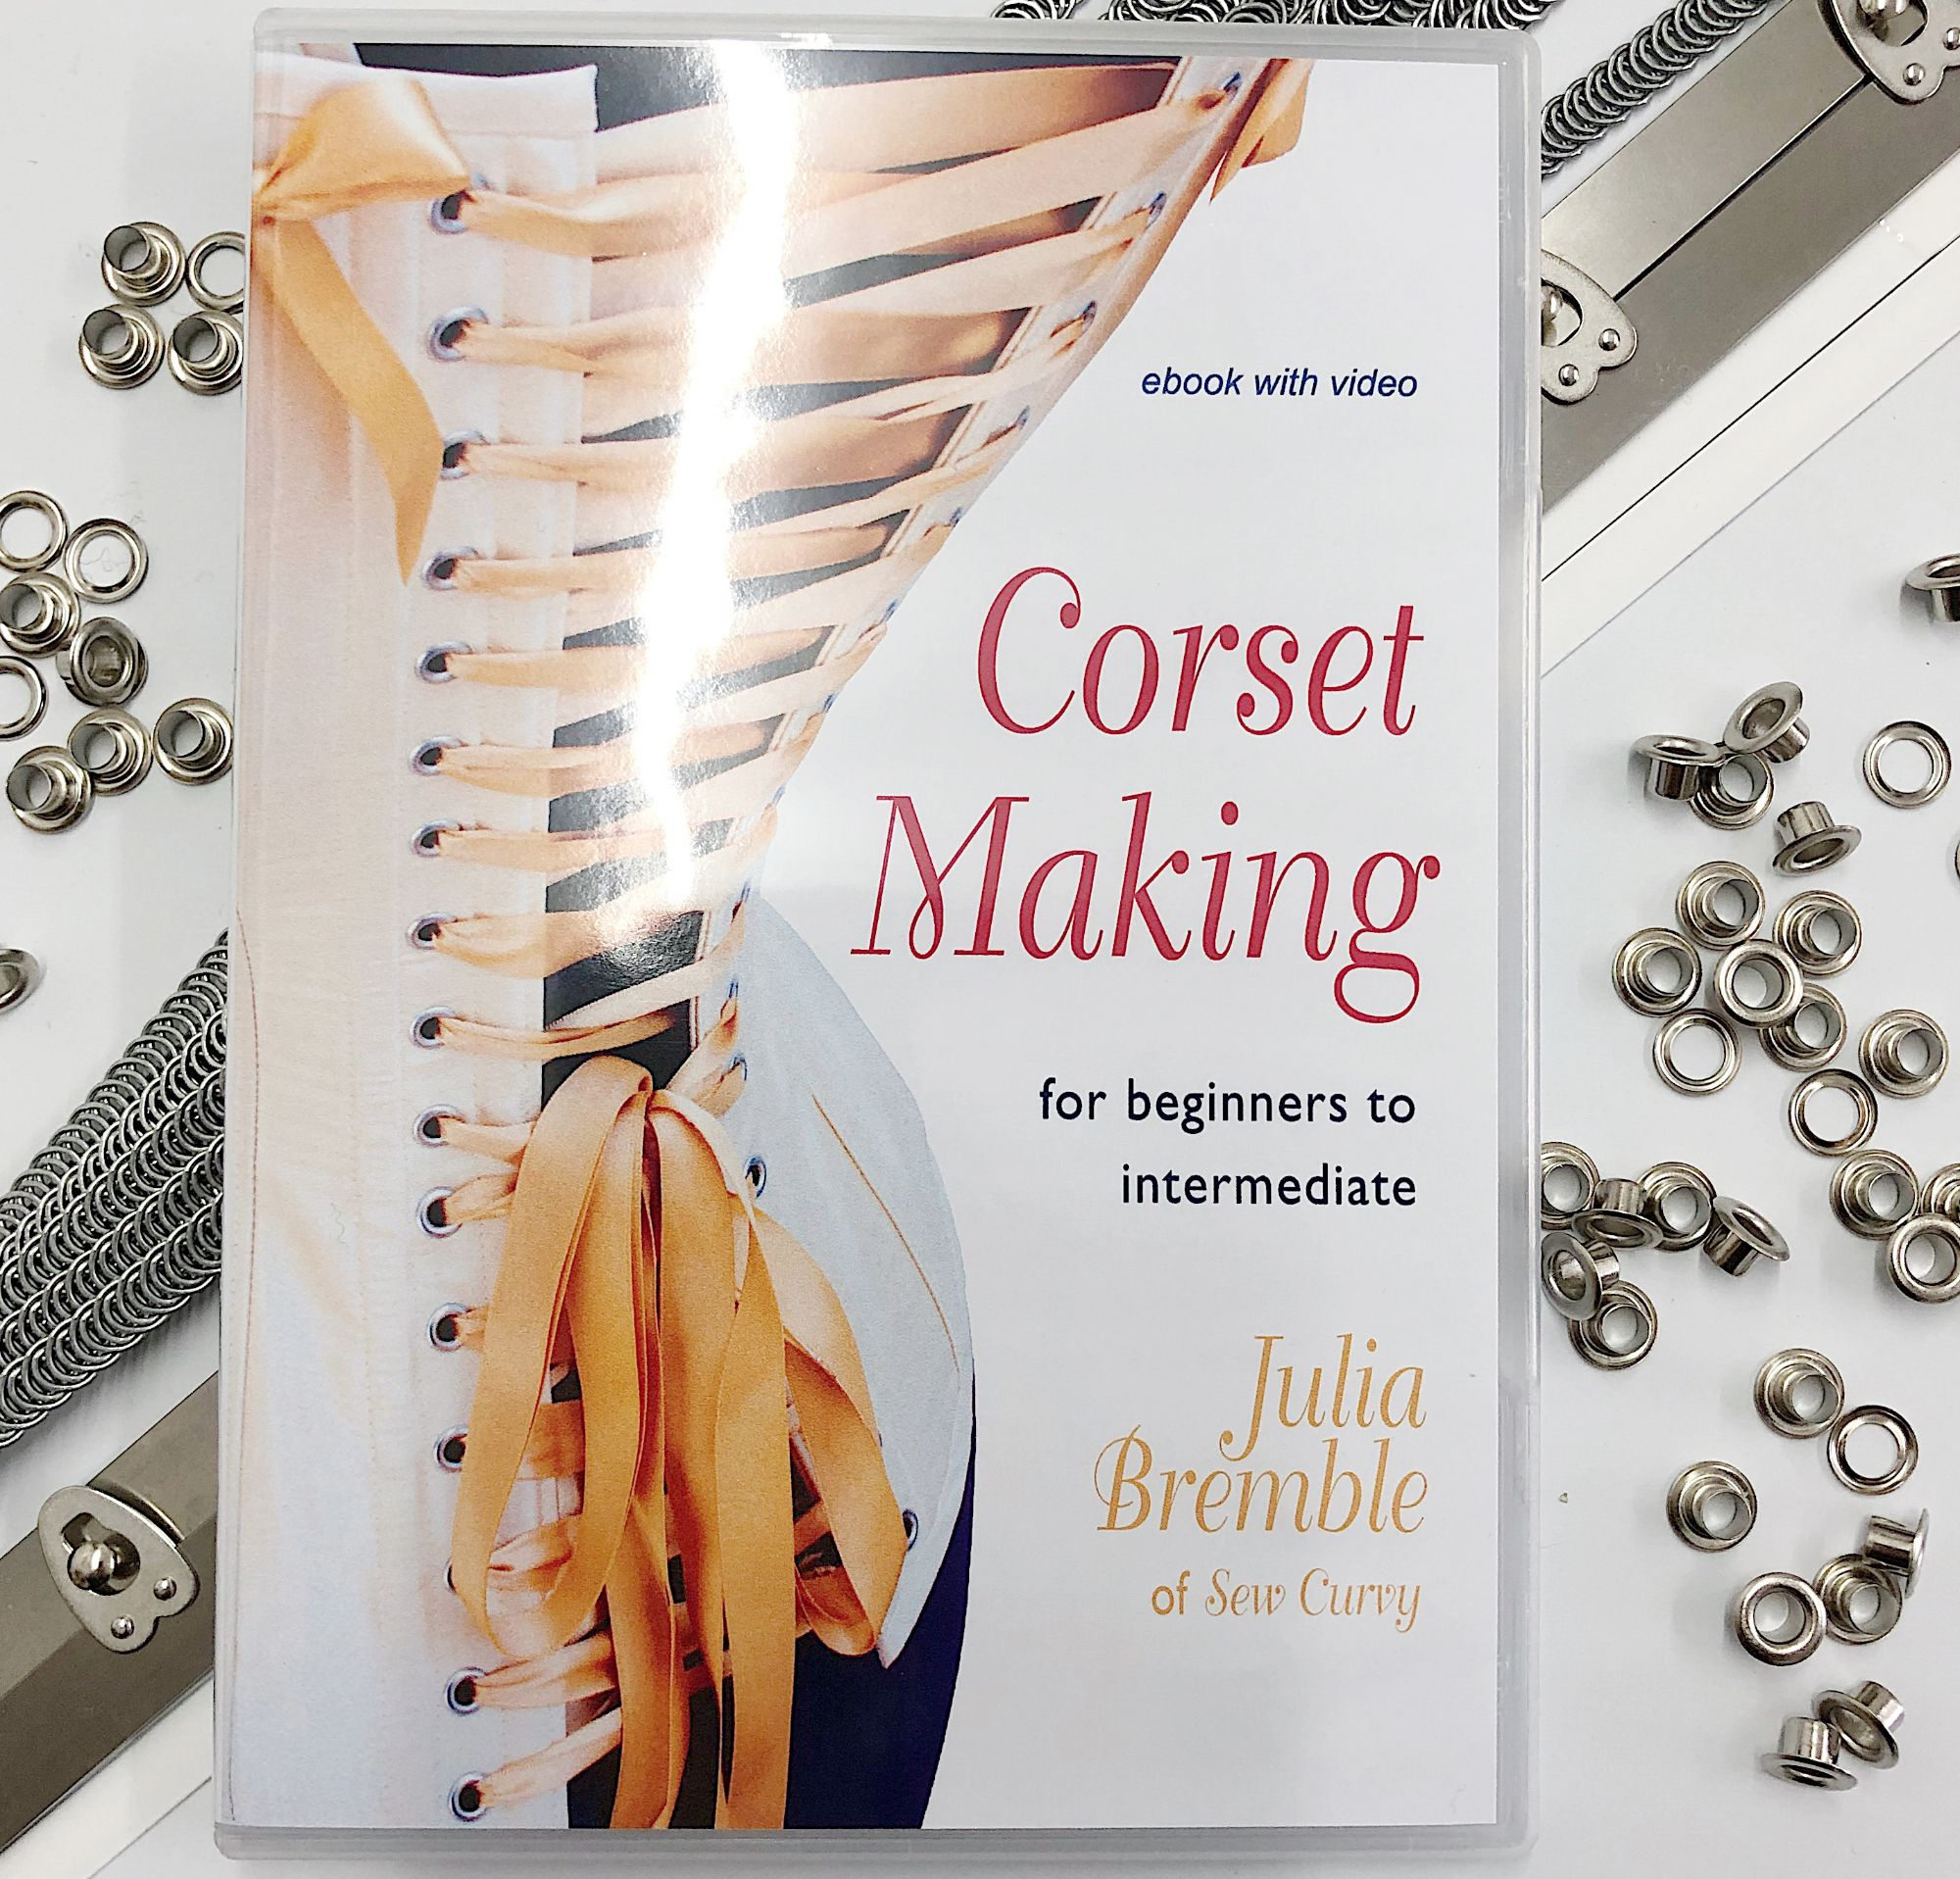 Learn corset making from beginners to intermediate